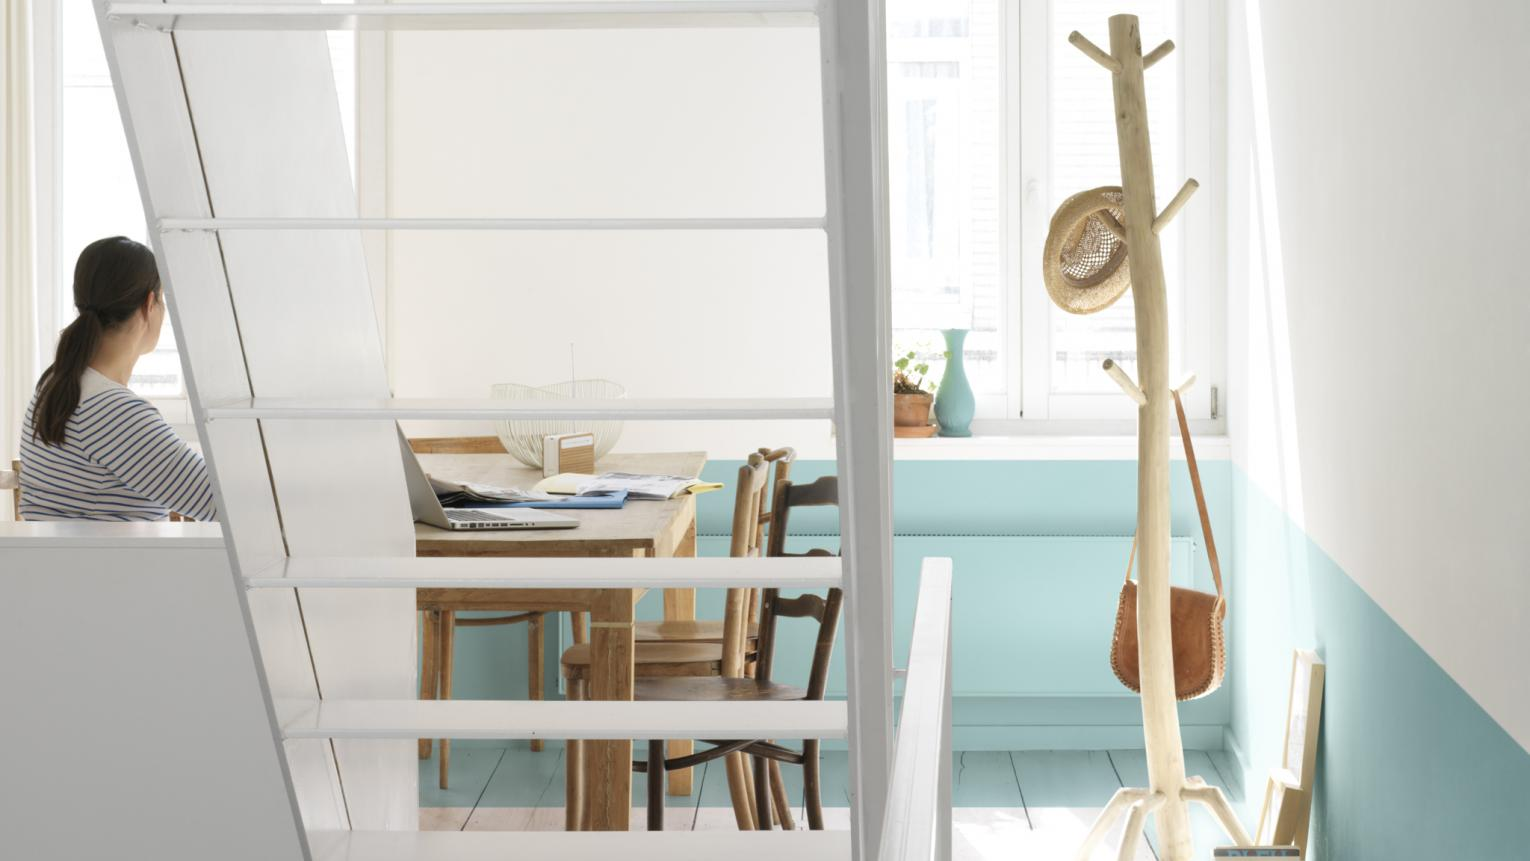 Use bright whites and cool blues to enhance natural light.